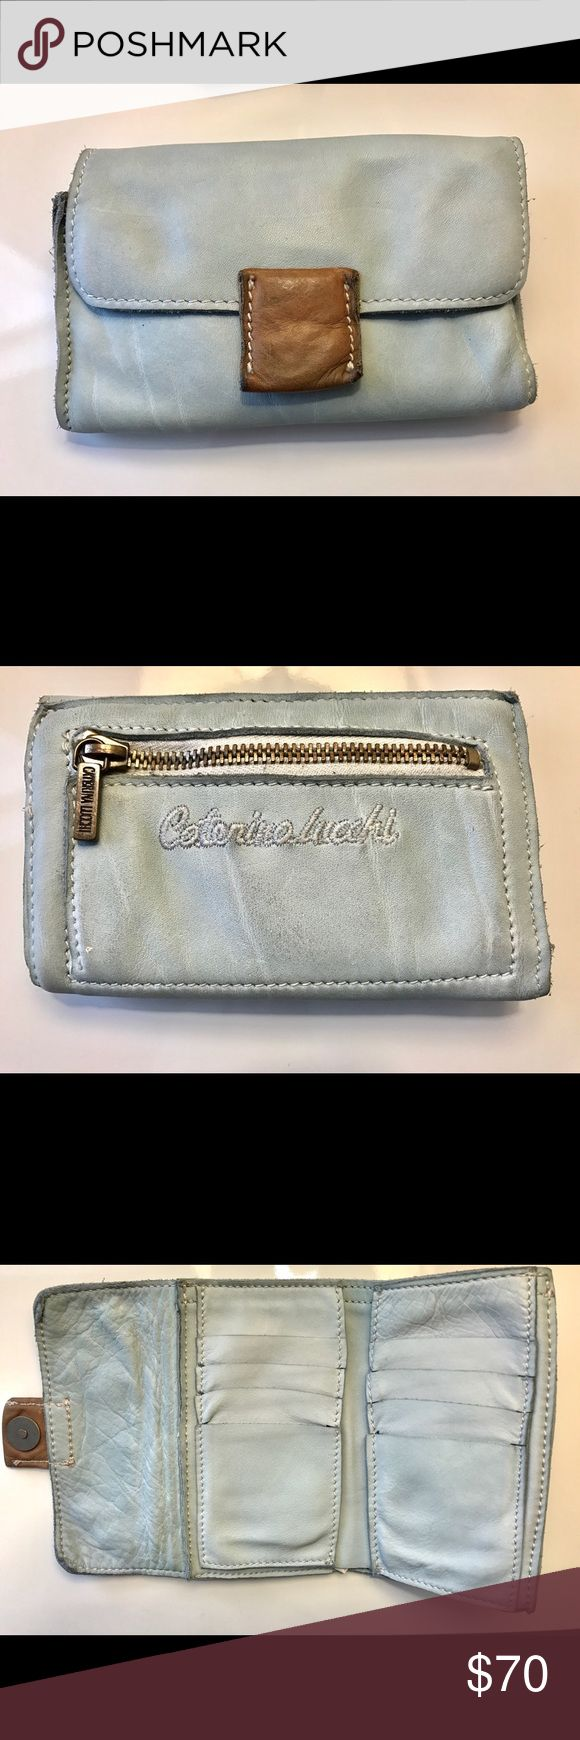 NWOT Caterina Lucci Anthropologie Calfskin Wallet NWOT Caterina Lucci Calfskin Wallet $150 retail. Made in Italy. Beautiful pale blue with camel colored leather patch snap closure. Embroidered logo on back. Distressed, ultra soft natural calfskin.   * Composition: Calfskin * Details: leather, solid color, logo, snap button closure, leather lining, internal card slots, billfold.  * Measurements: Height 3.9 inches , Width 5.85 inches made in Italy Anthropologie Bags Wallets